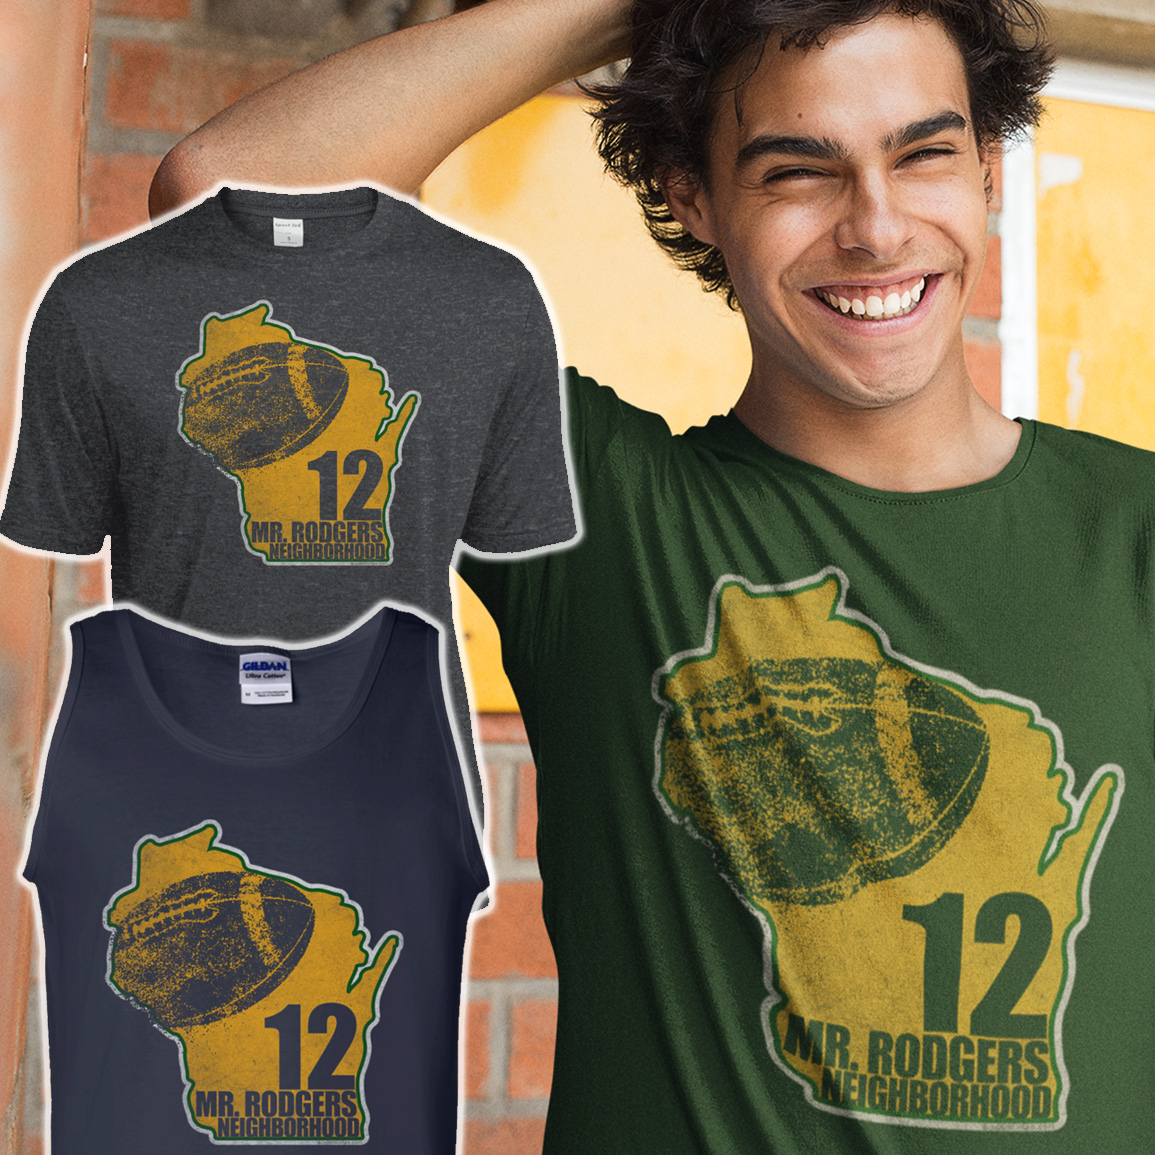 mr-rodgers-neighborhood-mens-tee-shirt